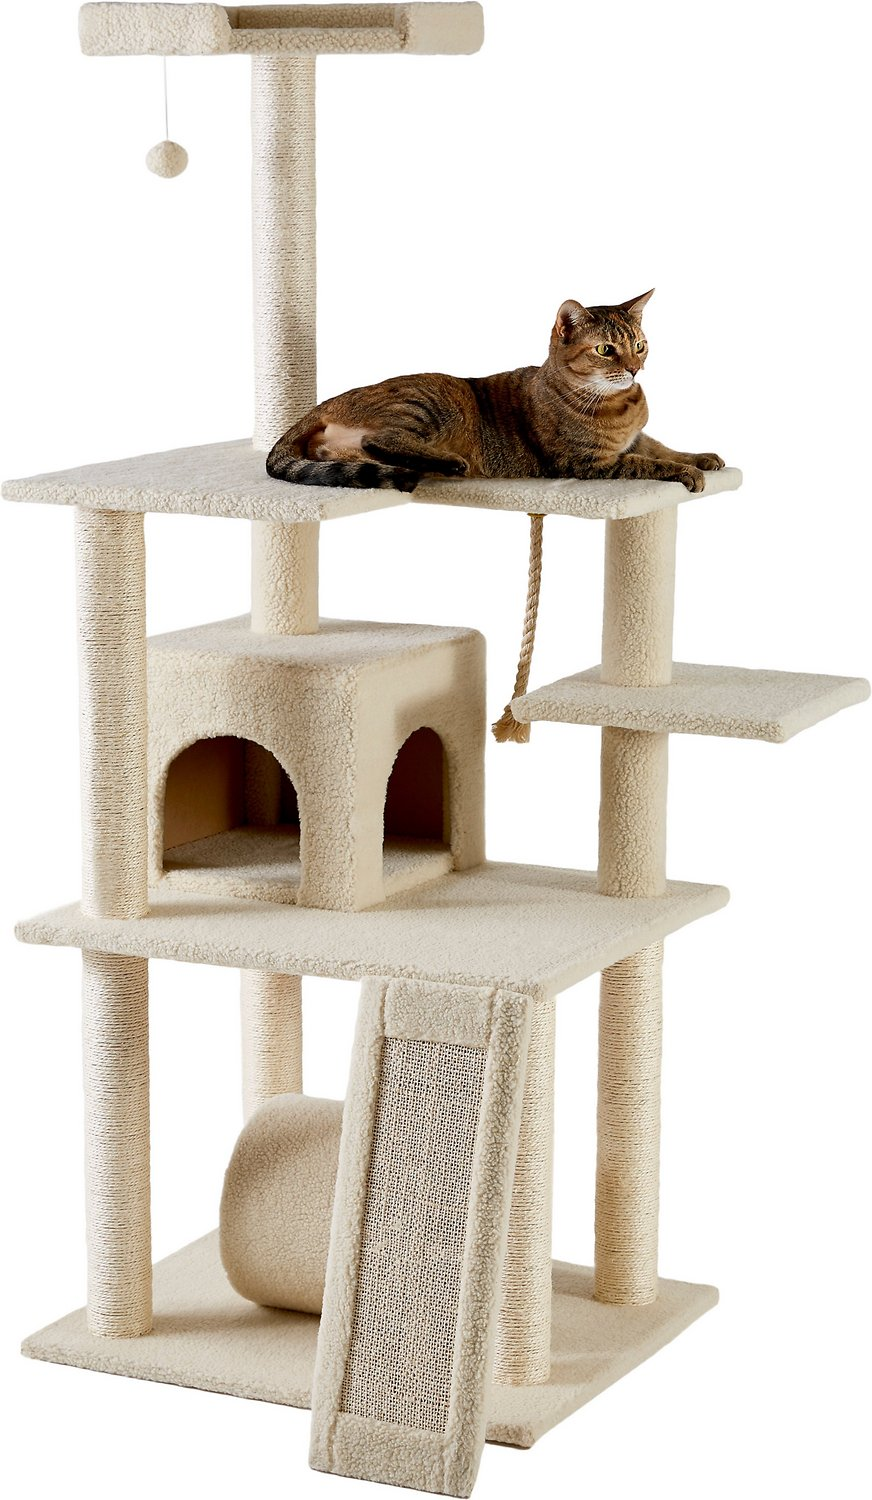 2bfd0099c966 Frisco 62-in Cat Tree, Cream - Chewy.com